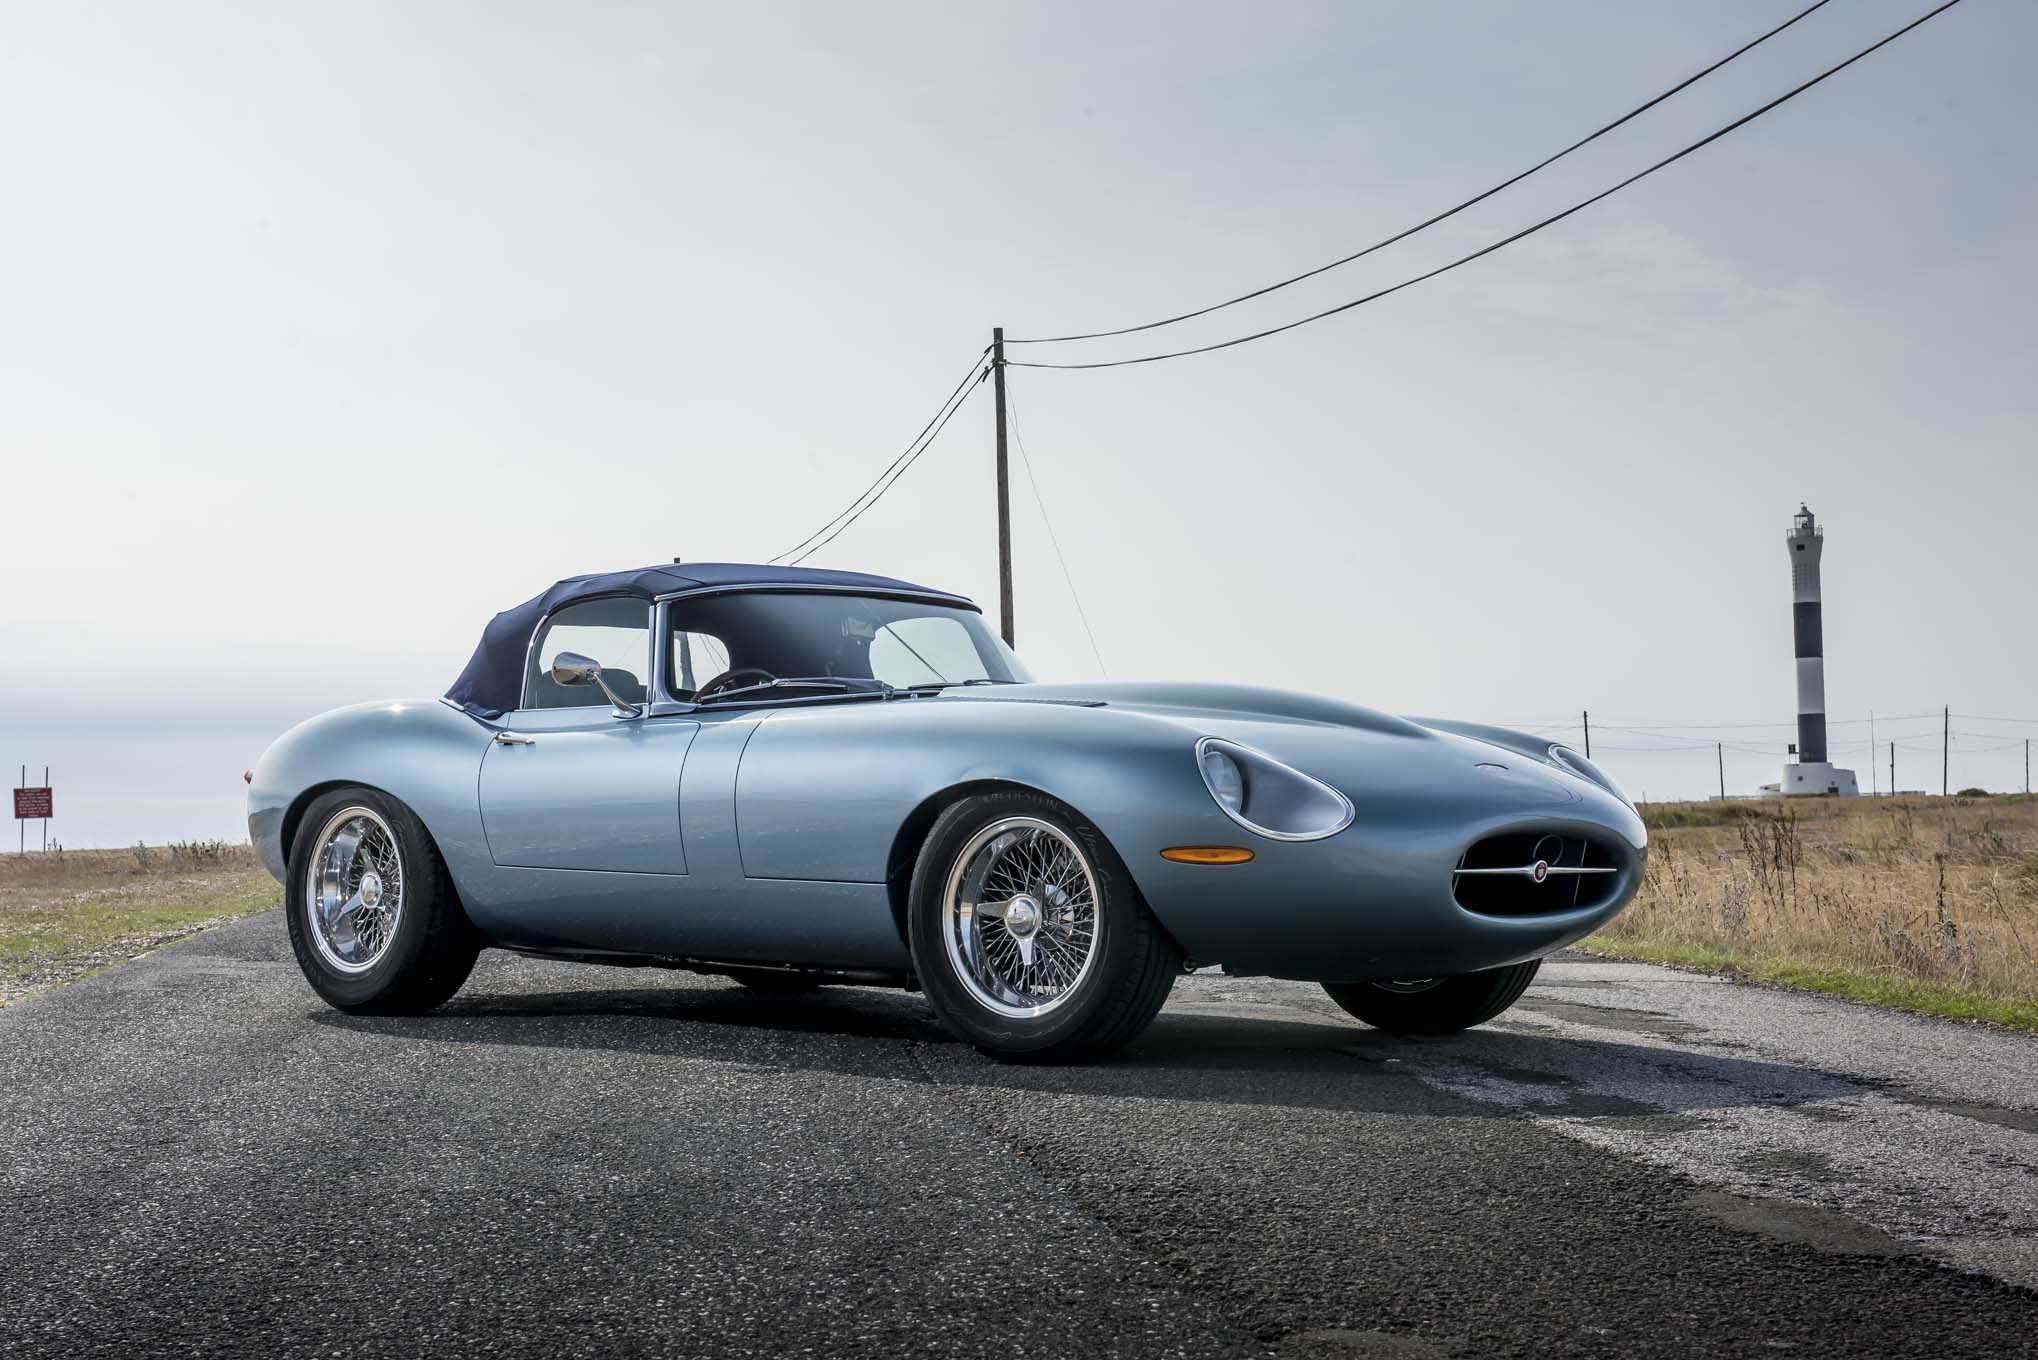 Eagle E-Type Spyder GT, KentPhoto: James Lipman / jameslipman.com